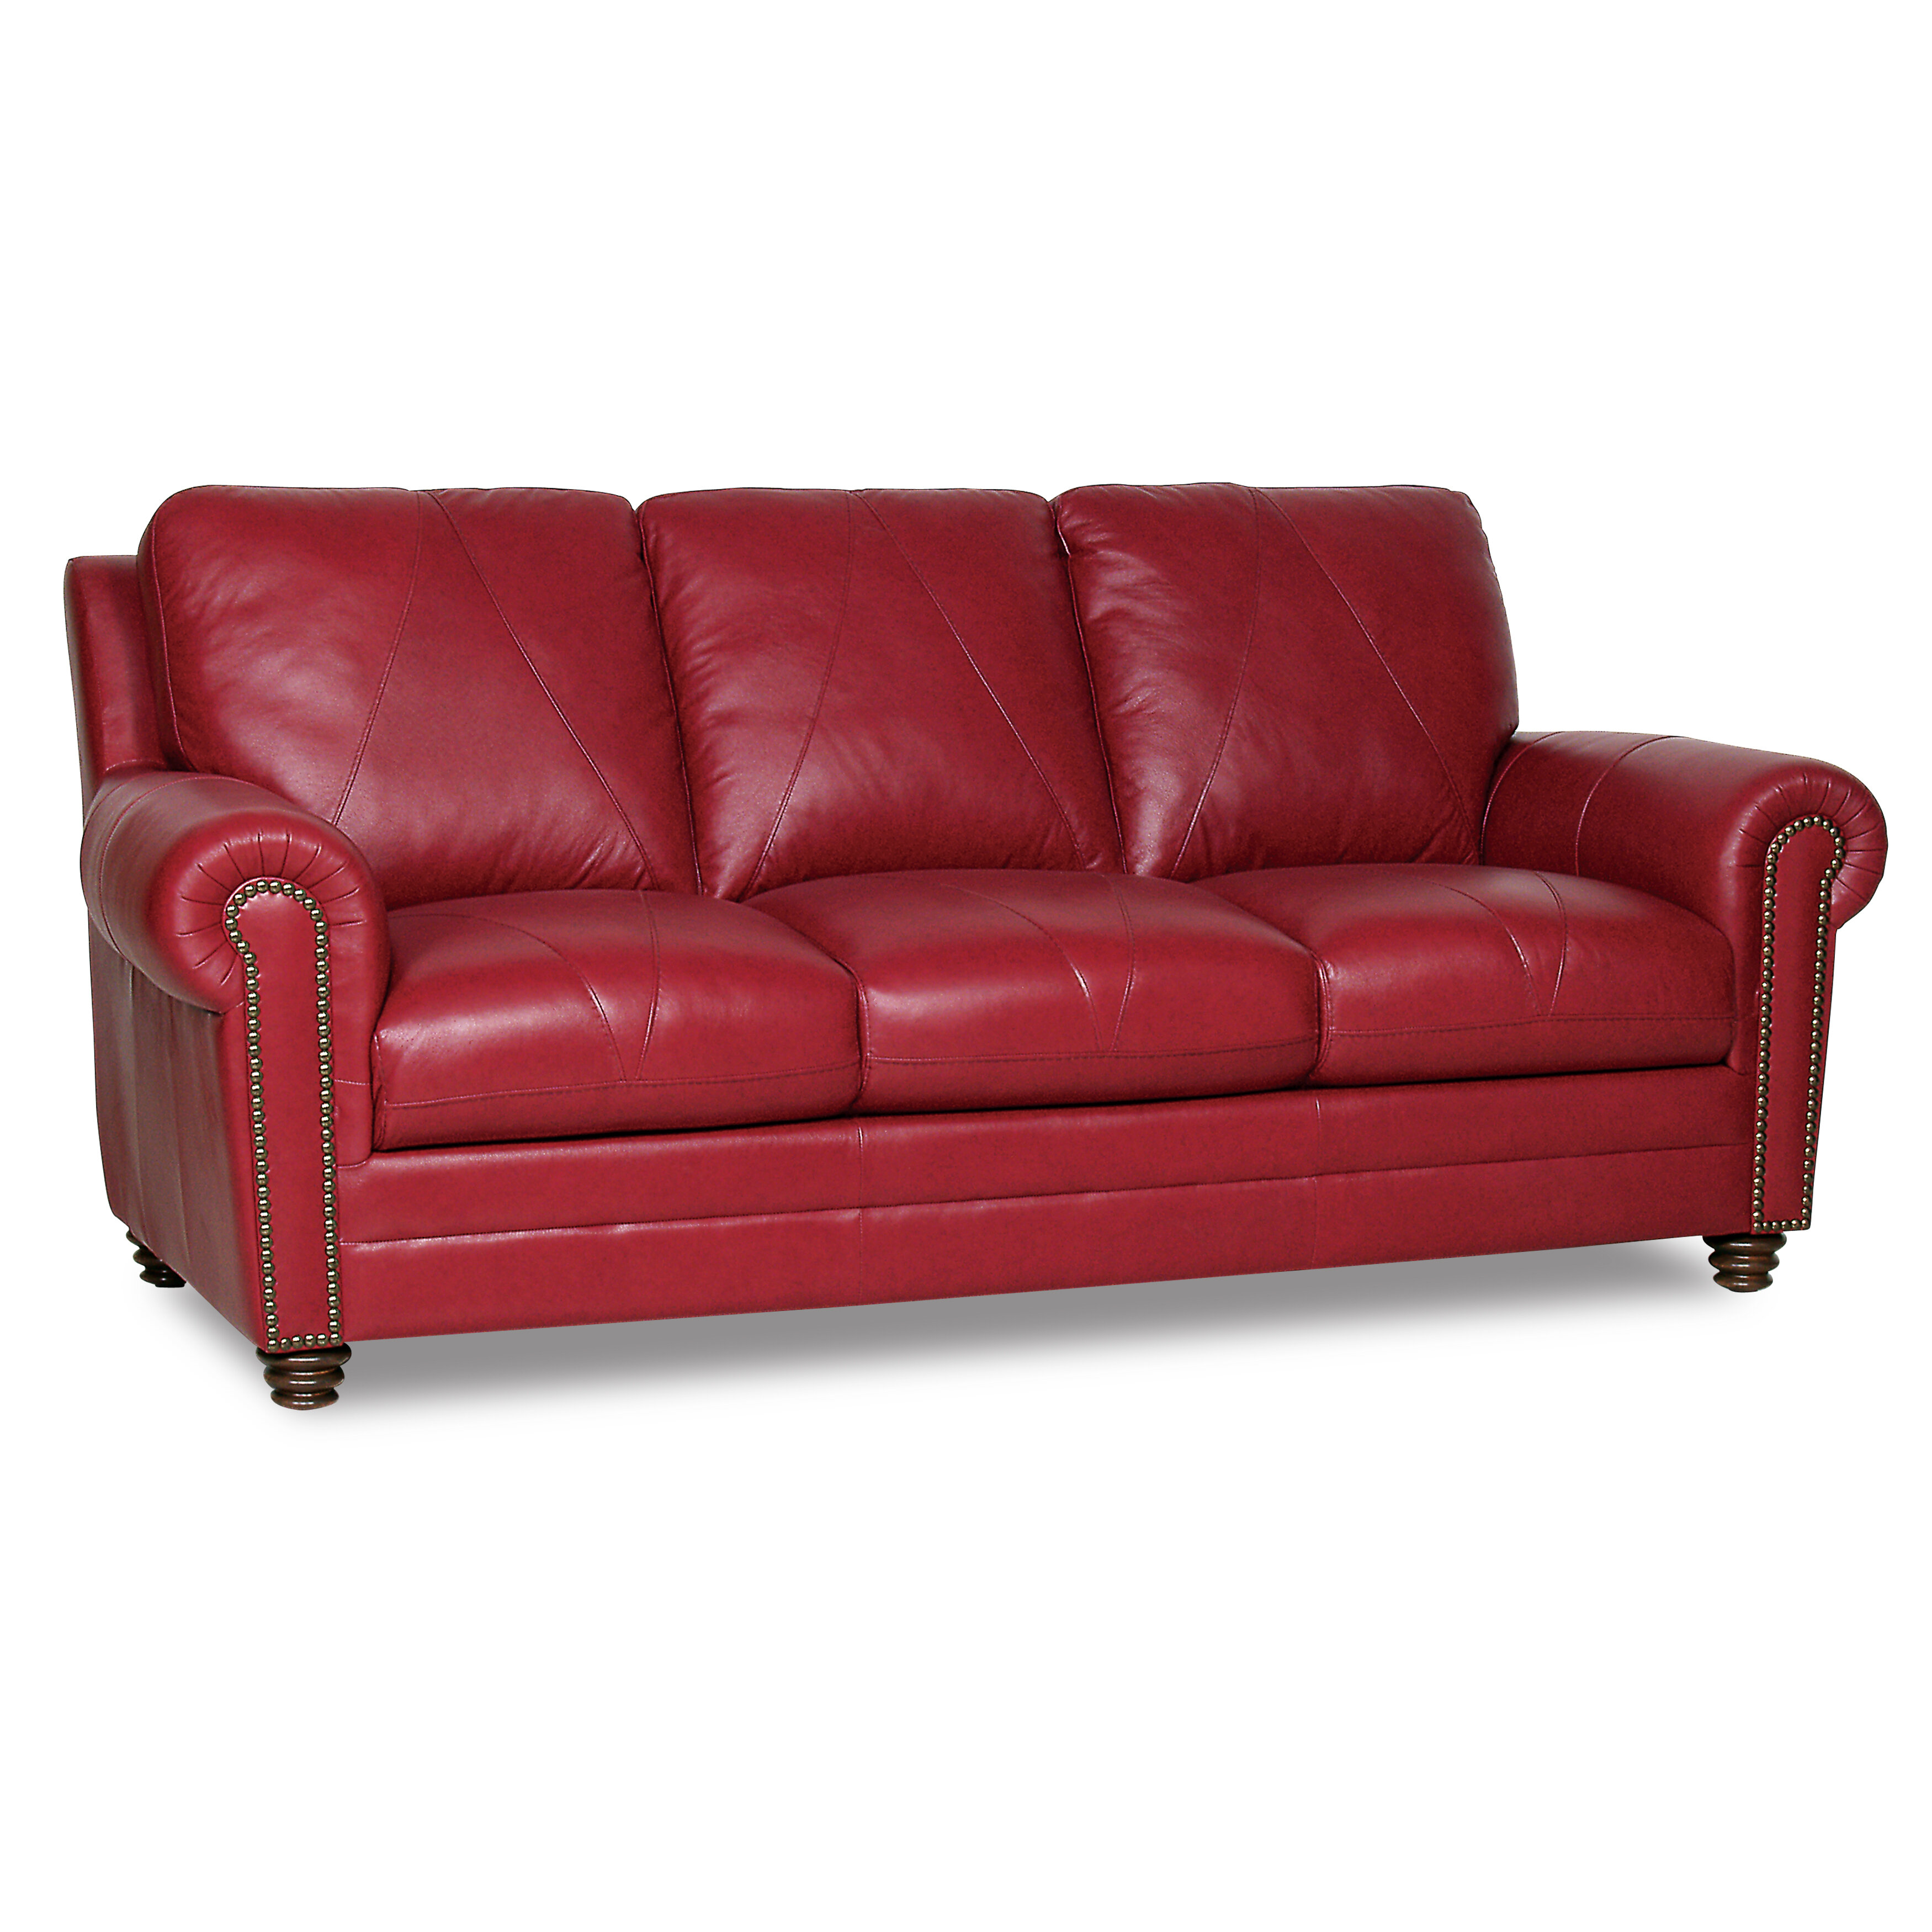 Leather Red Sofas You\'ll Love in 2019 | Wayfair